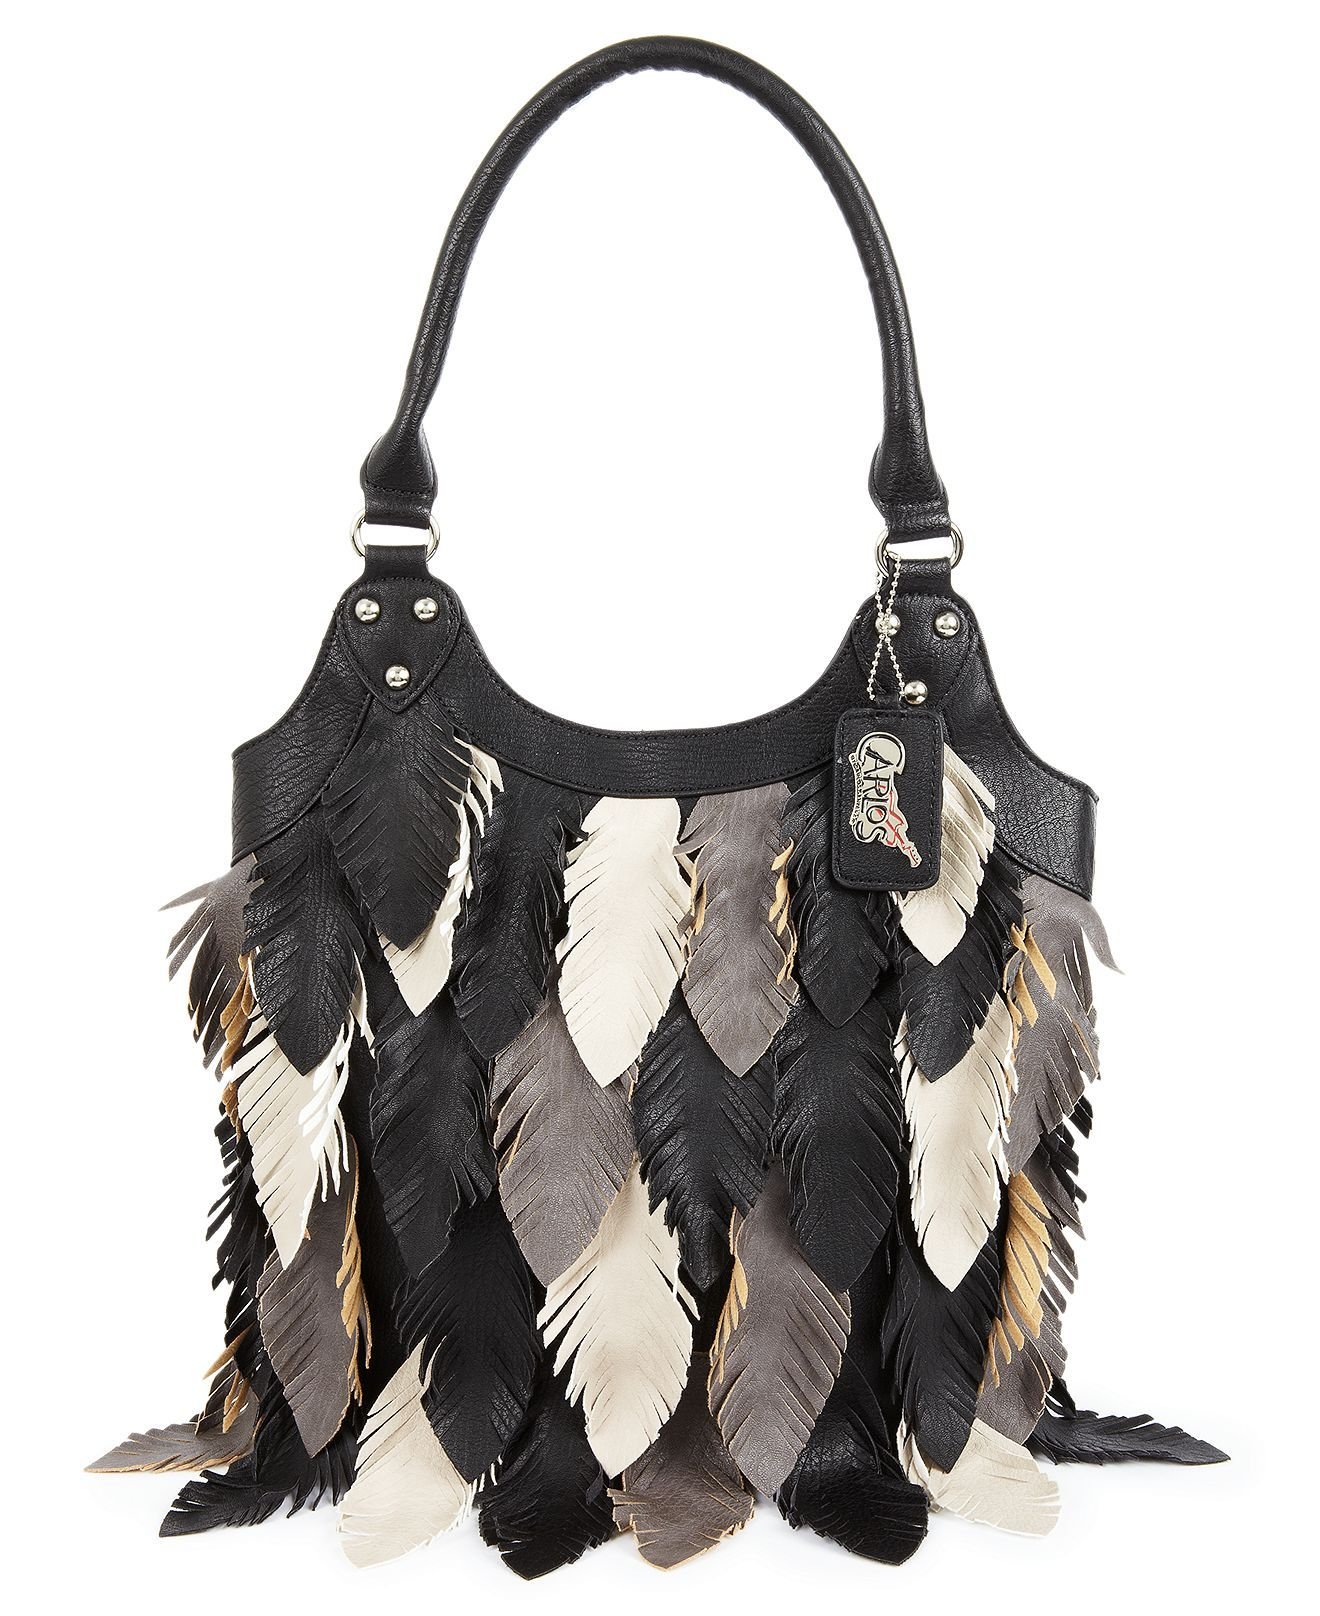 Carlos By Santana Handbag I Absolutely Love This Purse And Get Compliments All The Time On It So Glad Made Purchase